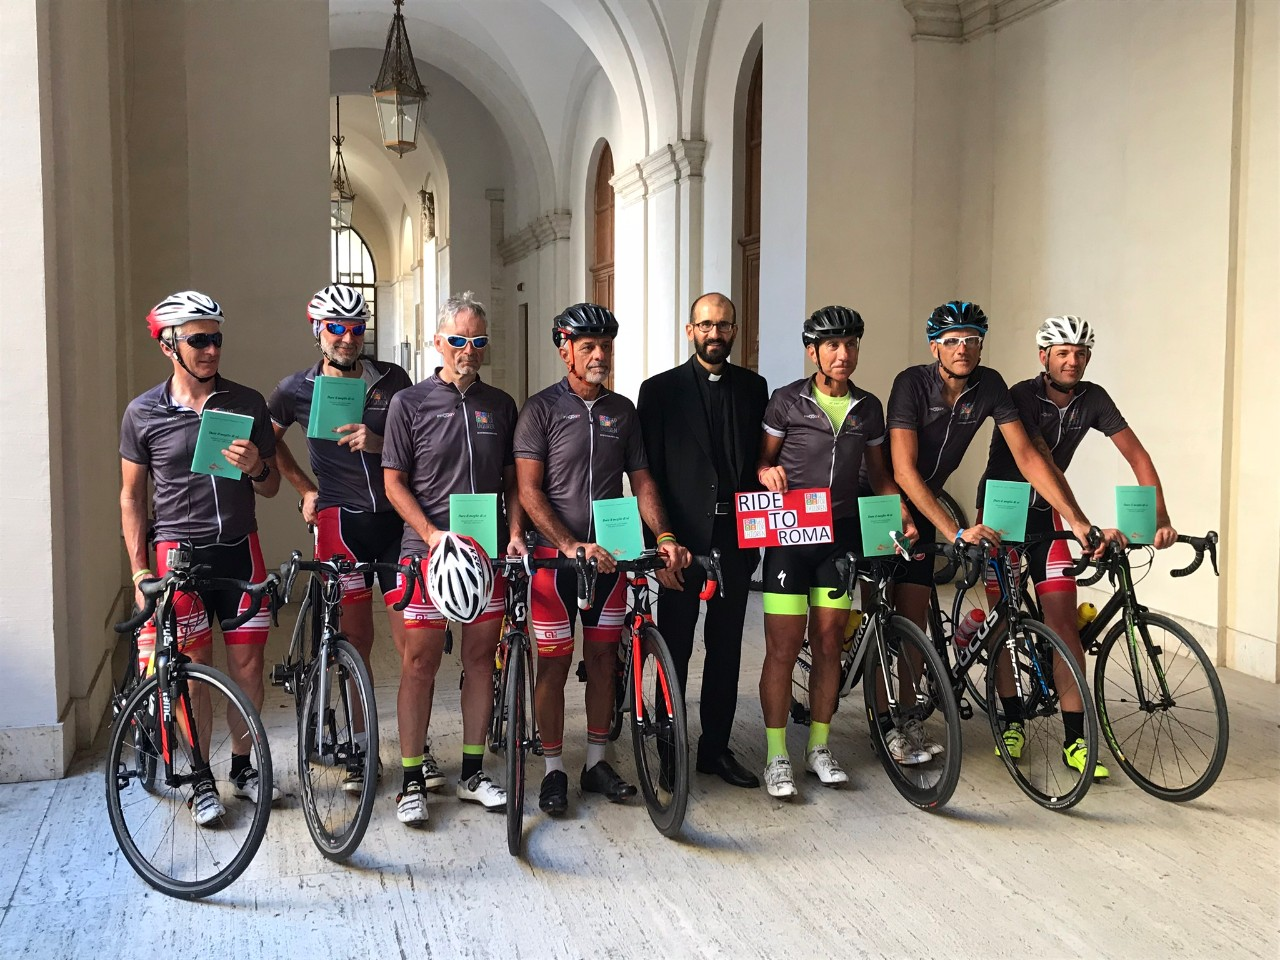 /content/dam/laityfamilylife/News/2018/Ride to Roma 2.jpg/jcr:content/renditions/cq5dam.web.1280.1280.jpeg